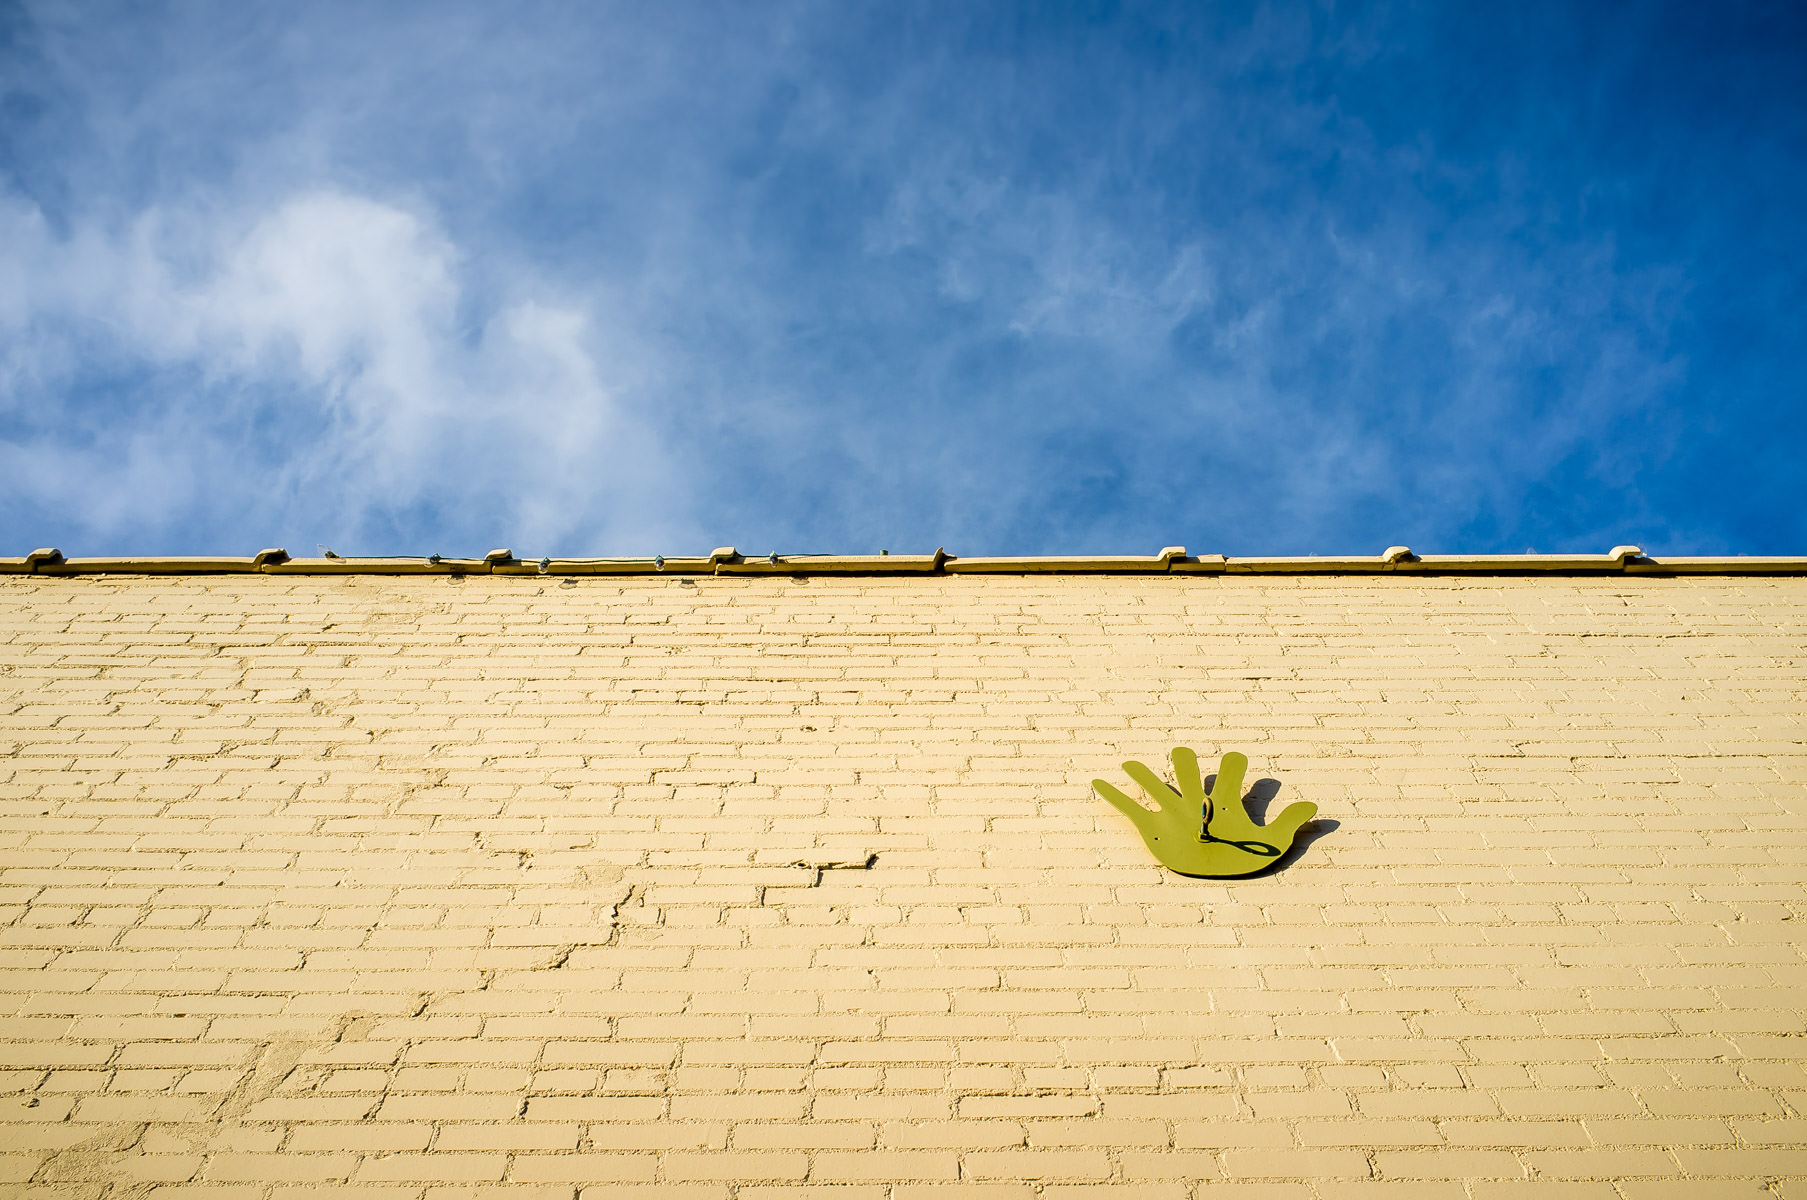 An outline of a hand spotted on the outside of the Discovery Science Place, Tyler, Texas.